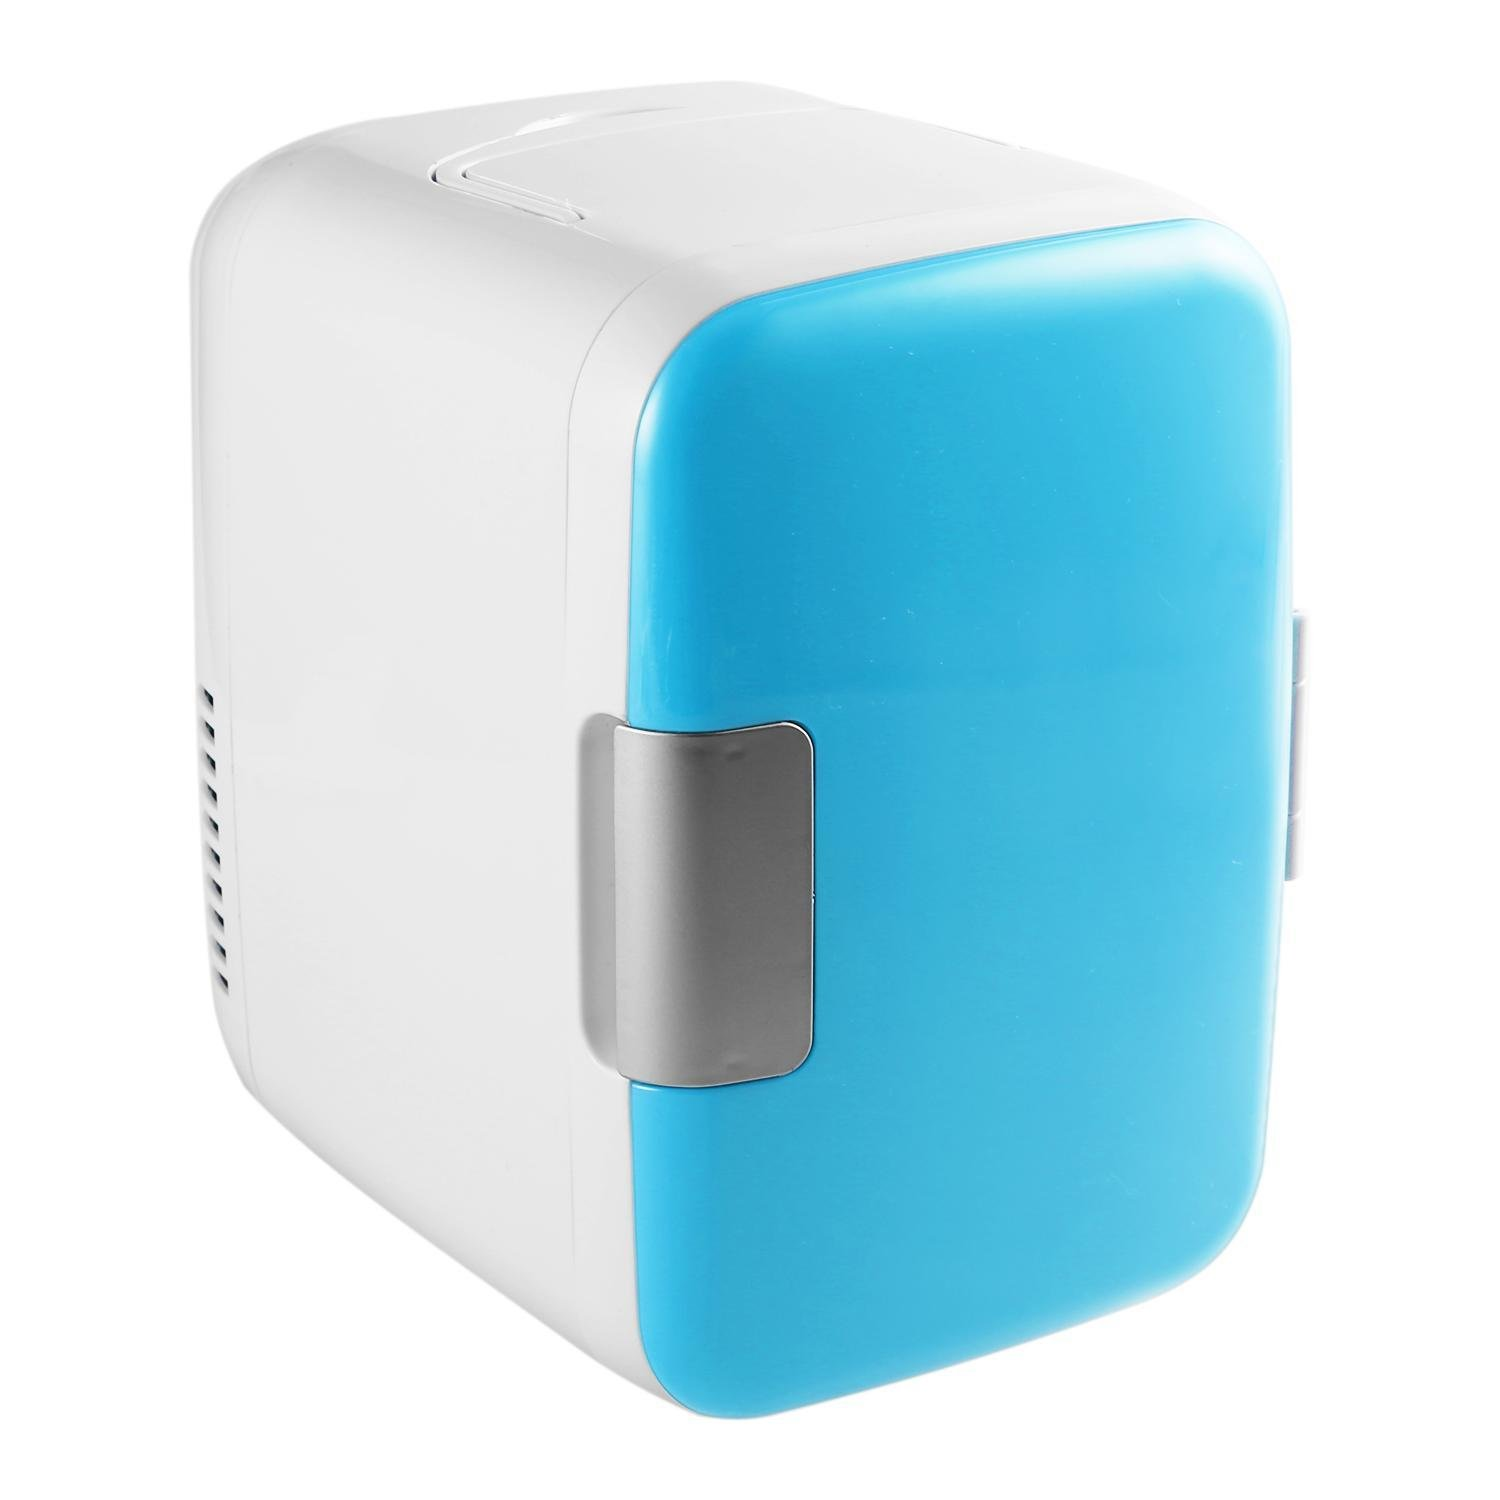 Portable Mini Fridge for Car Home Office 4 Liter 6 Can Cooler and Warmer AC & DC 110V (Blue)